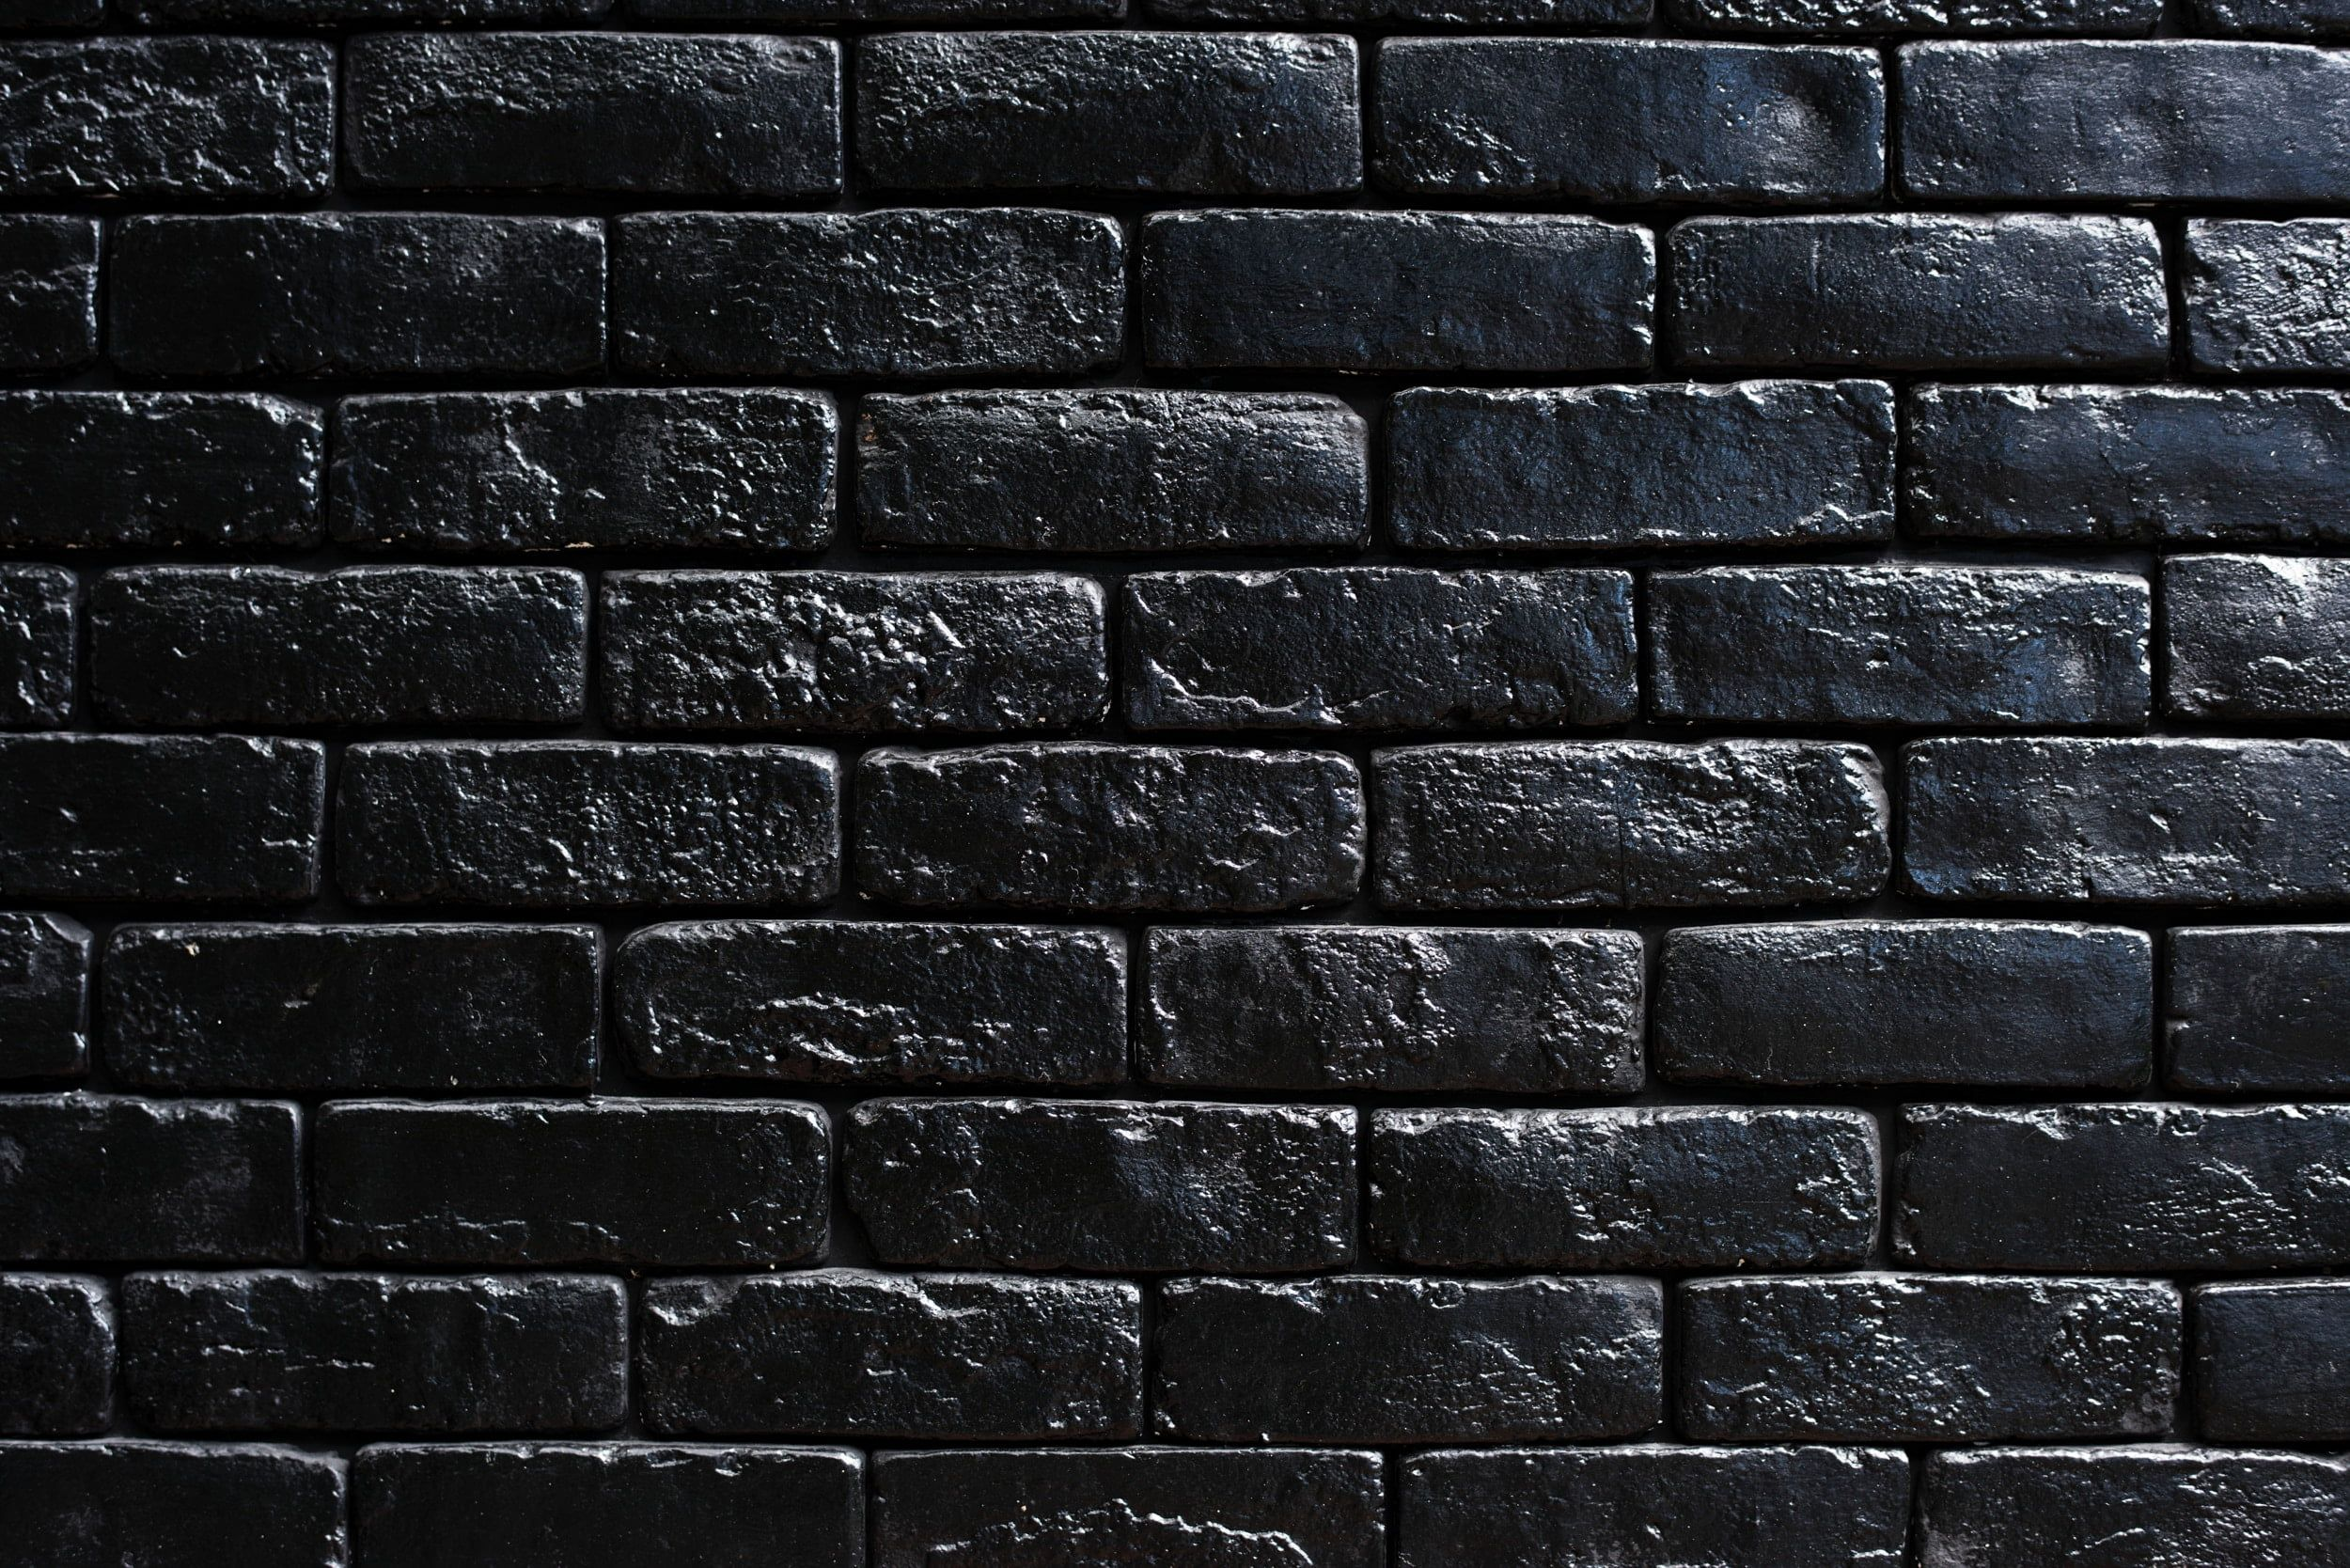 Black Wall Bricks Wall Bricks Black Paint 1080p Wallpaper Hdwallpaper Desktop Black Brick Wall Black Brick Black Brick Wallpaper